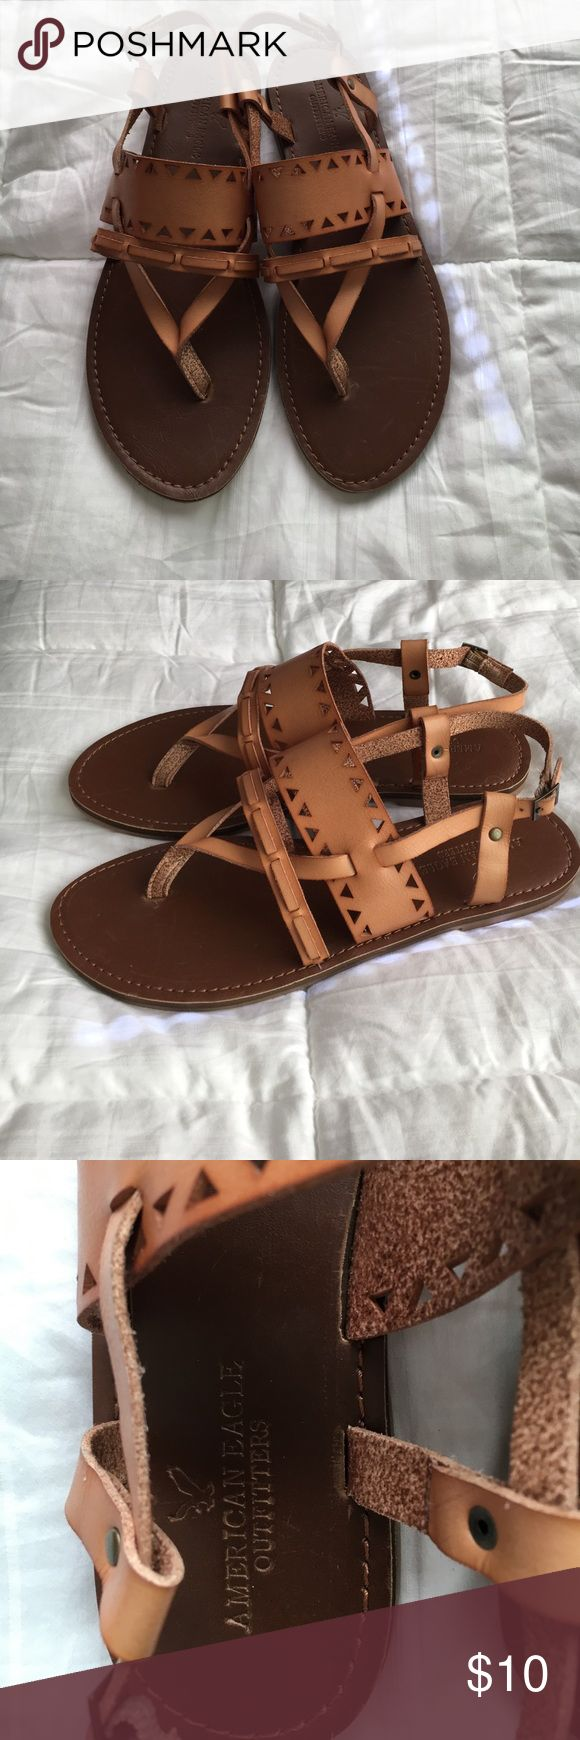 American eagle sandals NEVER WORN. Super cute sandals from American Eagle Outfitters. Leather American Eagle Outfitters Shoes Sandals